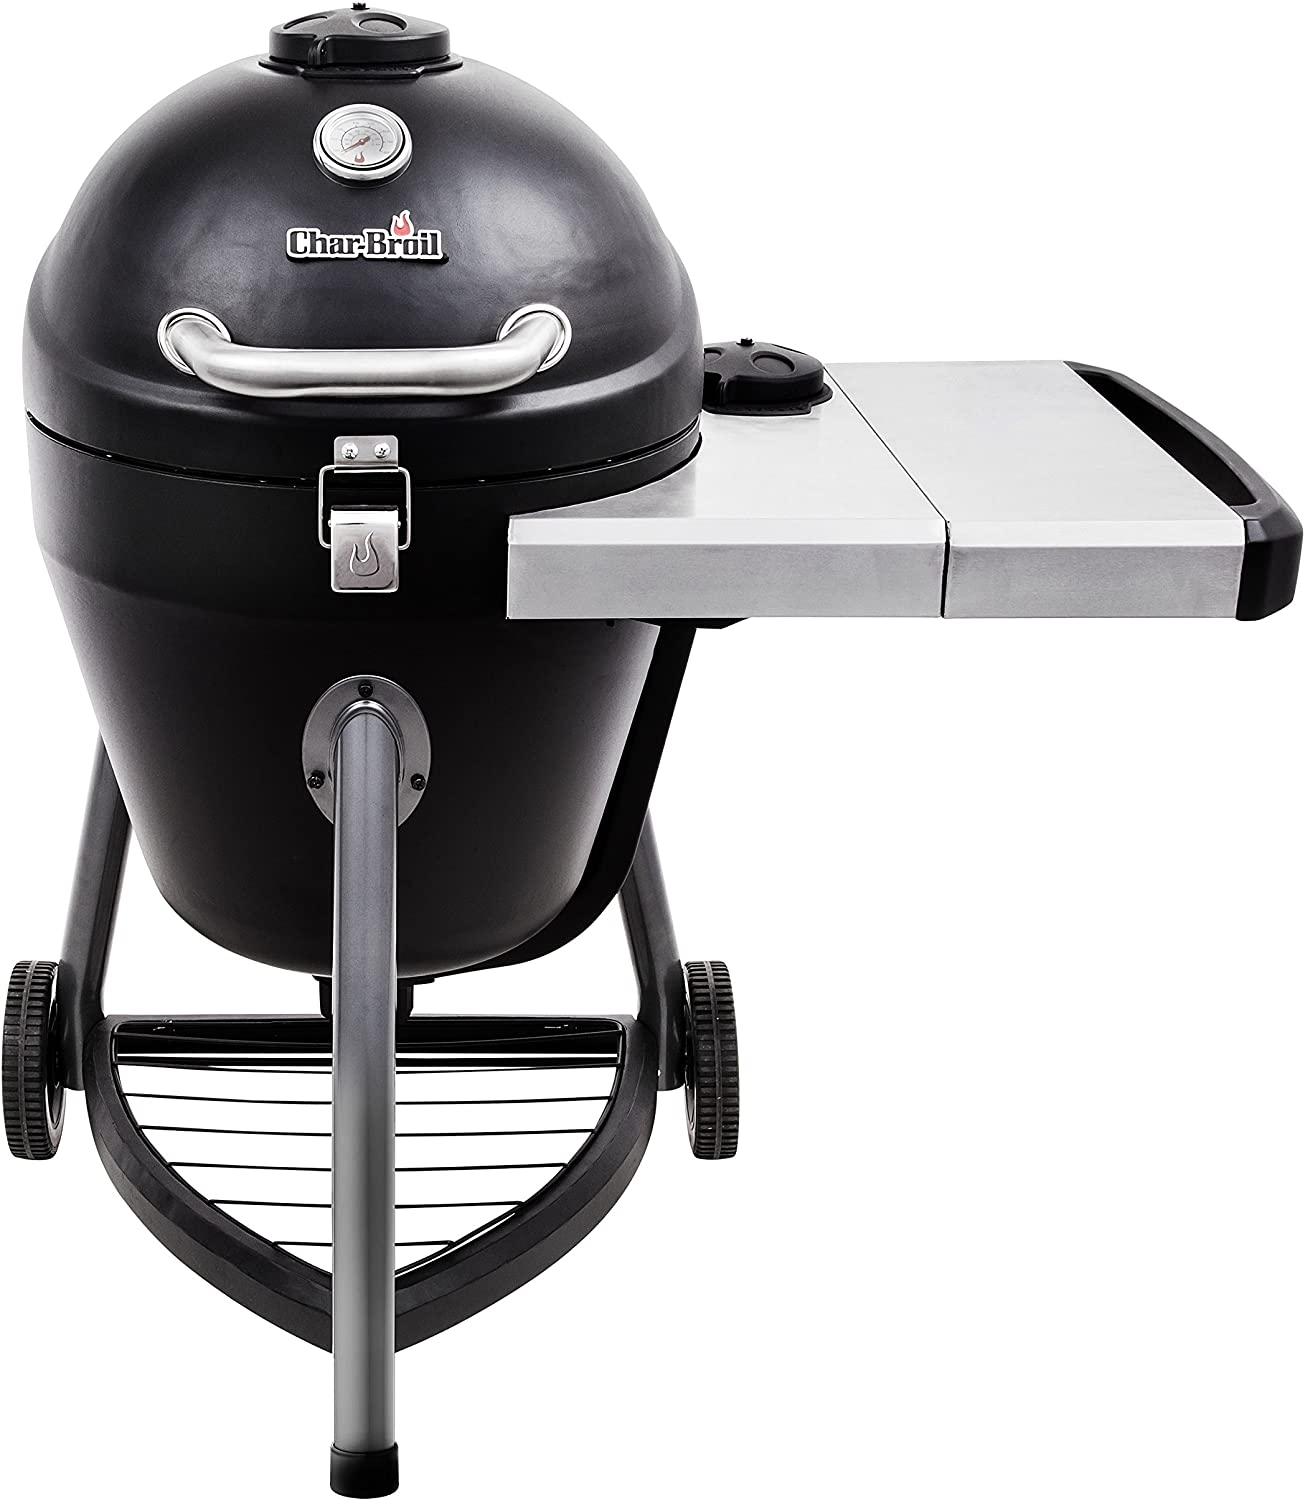 Char-Broil-Kamander-Charcoal-Grill